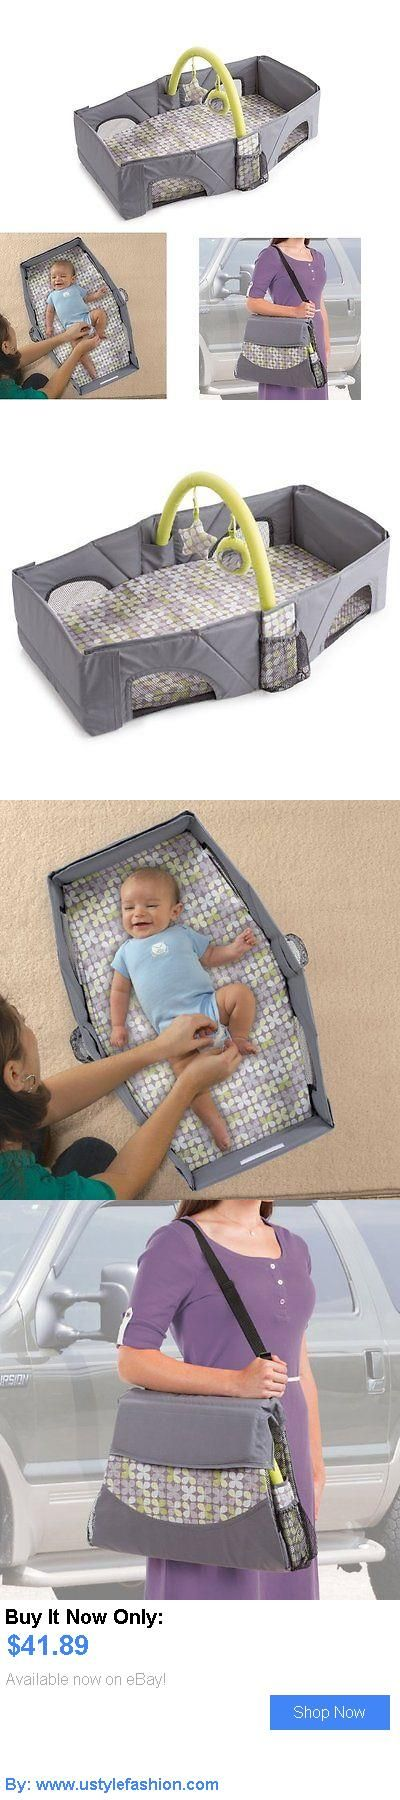 Bassinets And Cradles: Foldable Travel Bassinet Bed Crib Playpen Diaper Changer Infant Nursery Sleeper BUY IT NOW ONLY: $41.89 #ustylefashionBassinetsAndCradles OR #ustylefashion